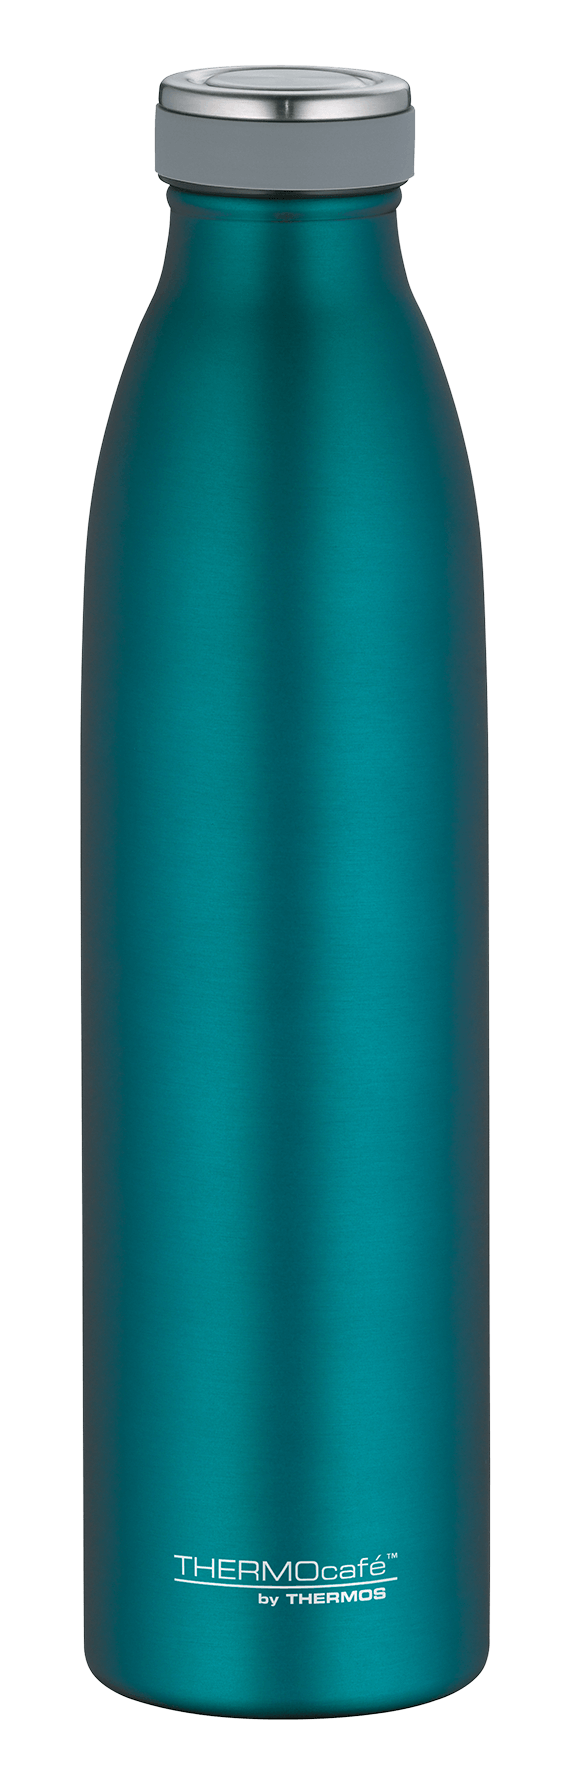 Thermos-Tc-Bottle-Mat-Teal-0-75-Vorschau